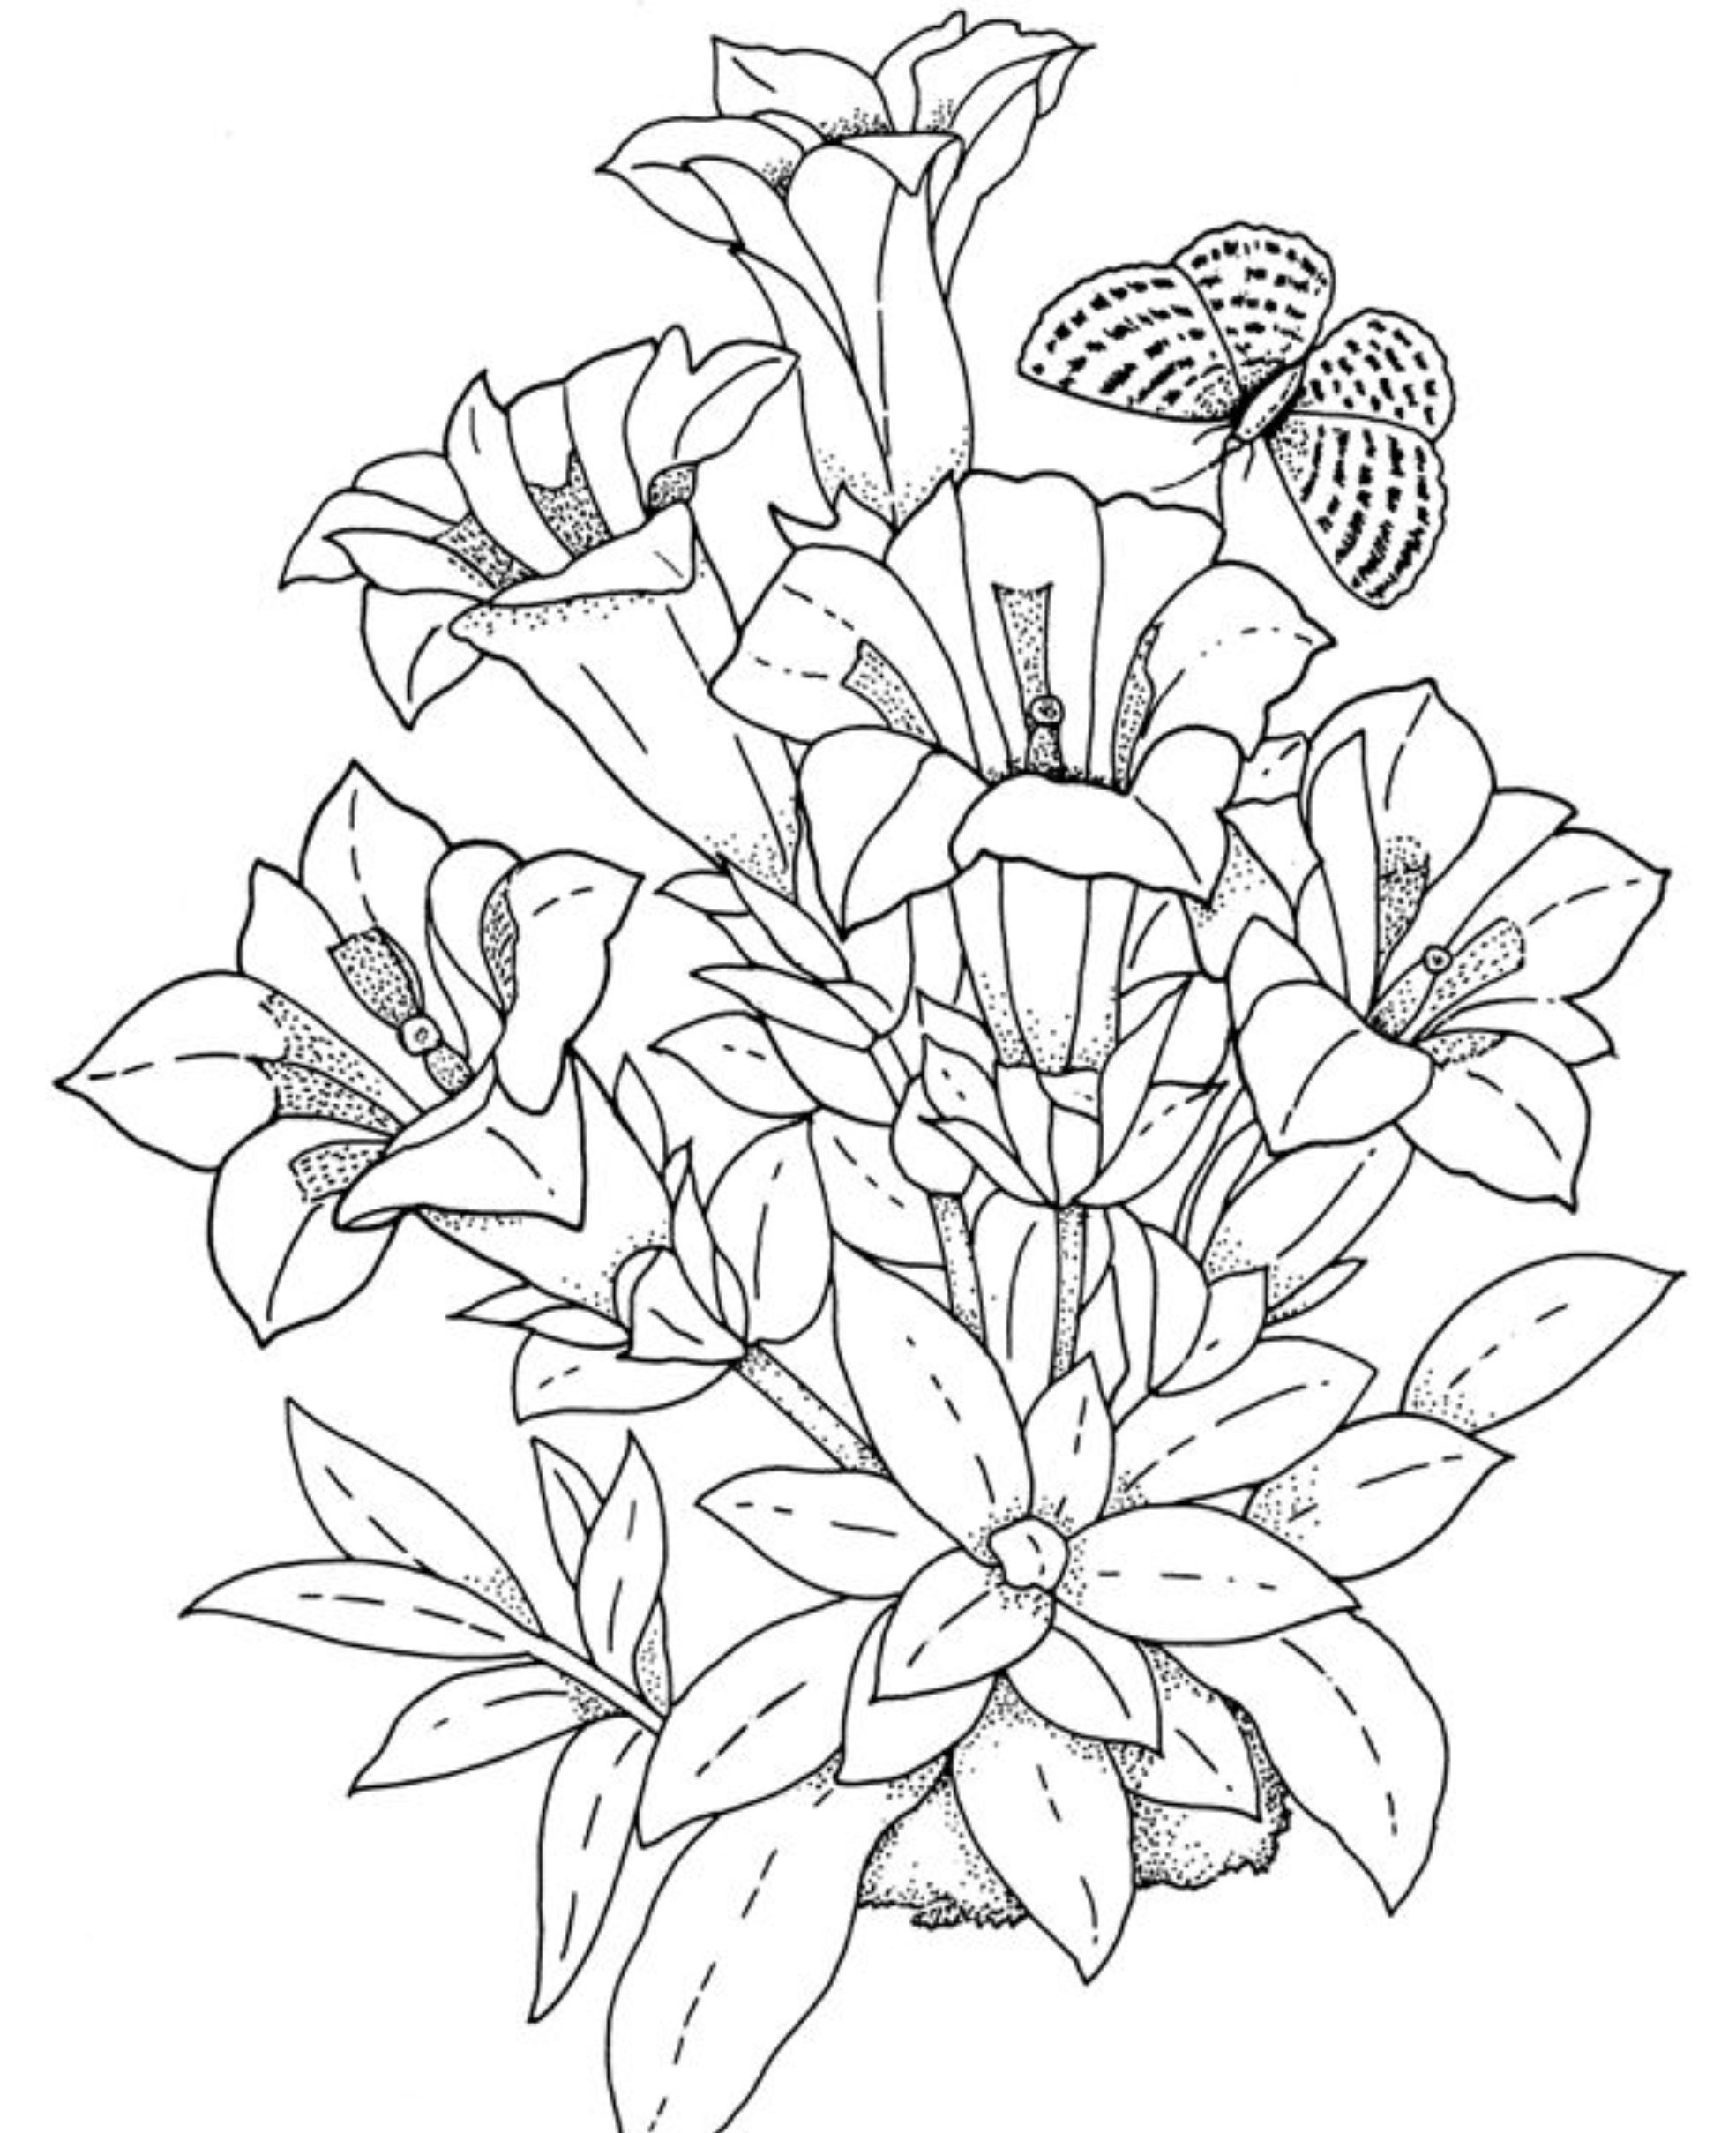 flower coloring pages adults drawing flower flowers adult coloring pages page 4 flower adults coloring pages